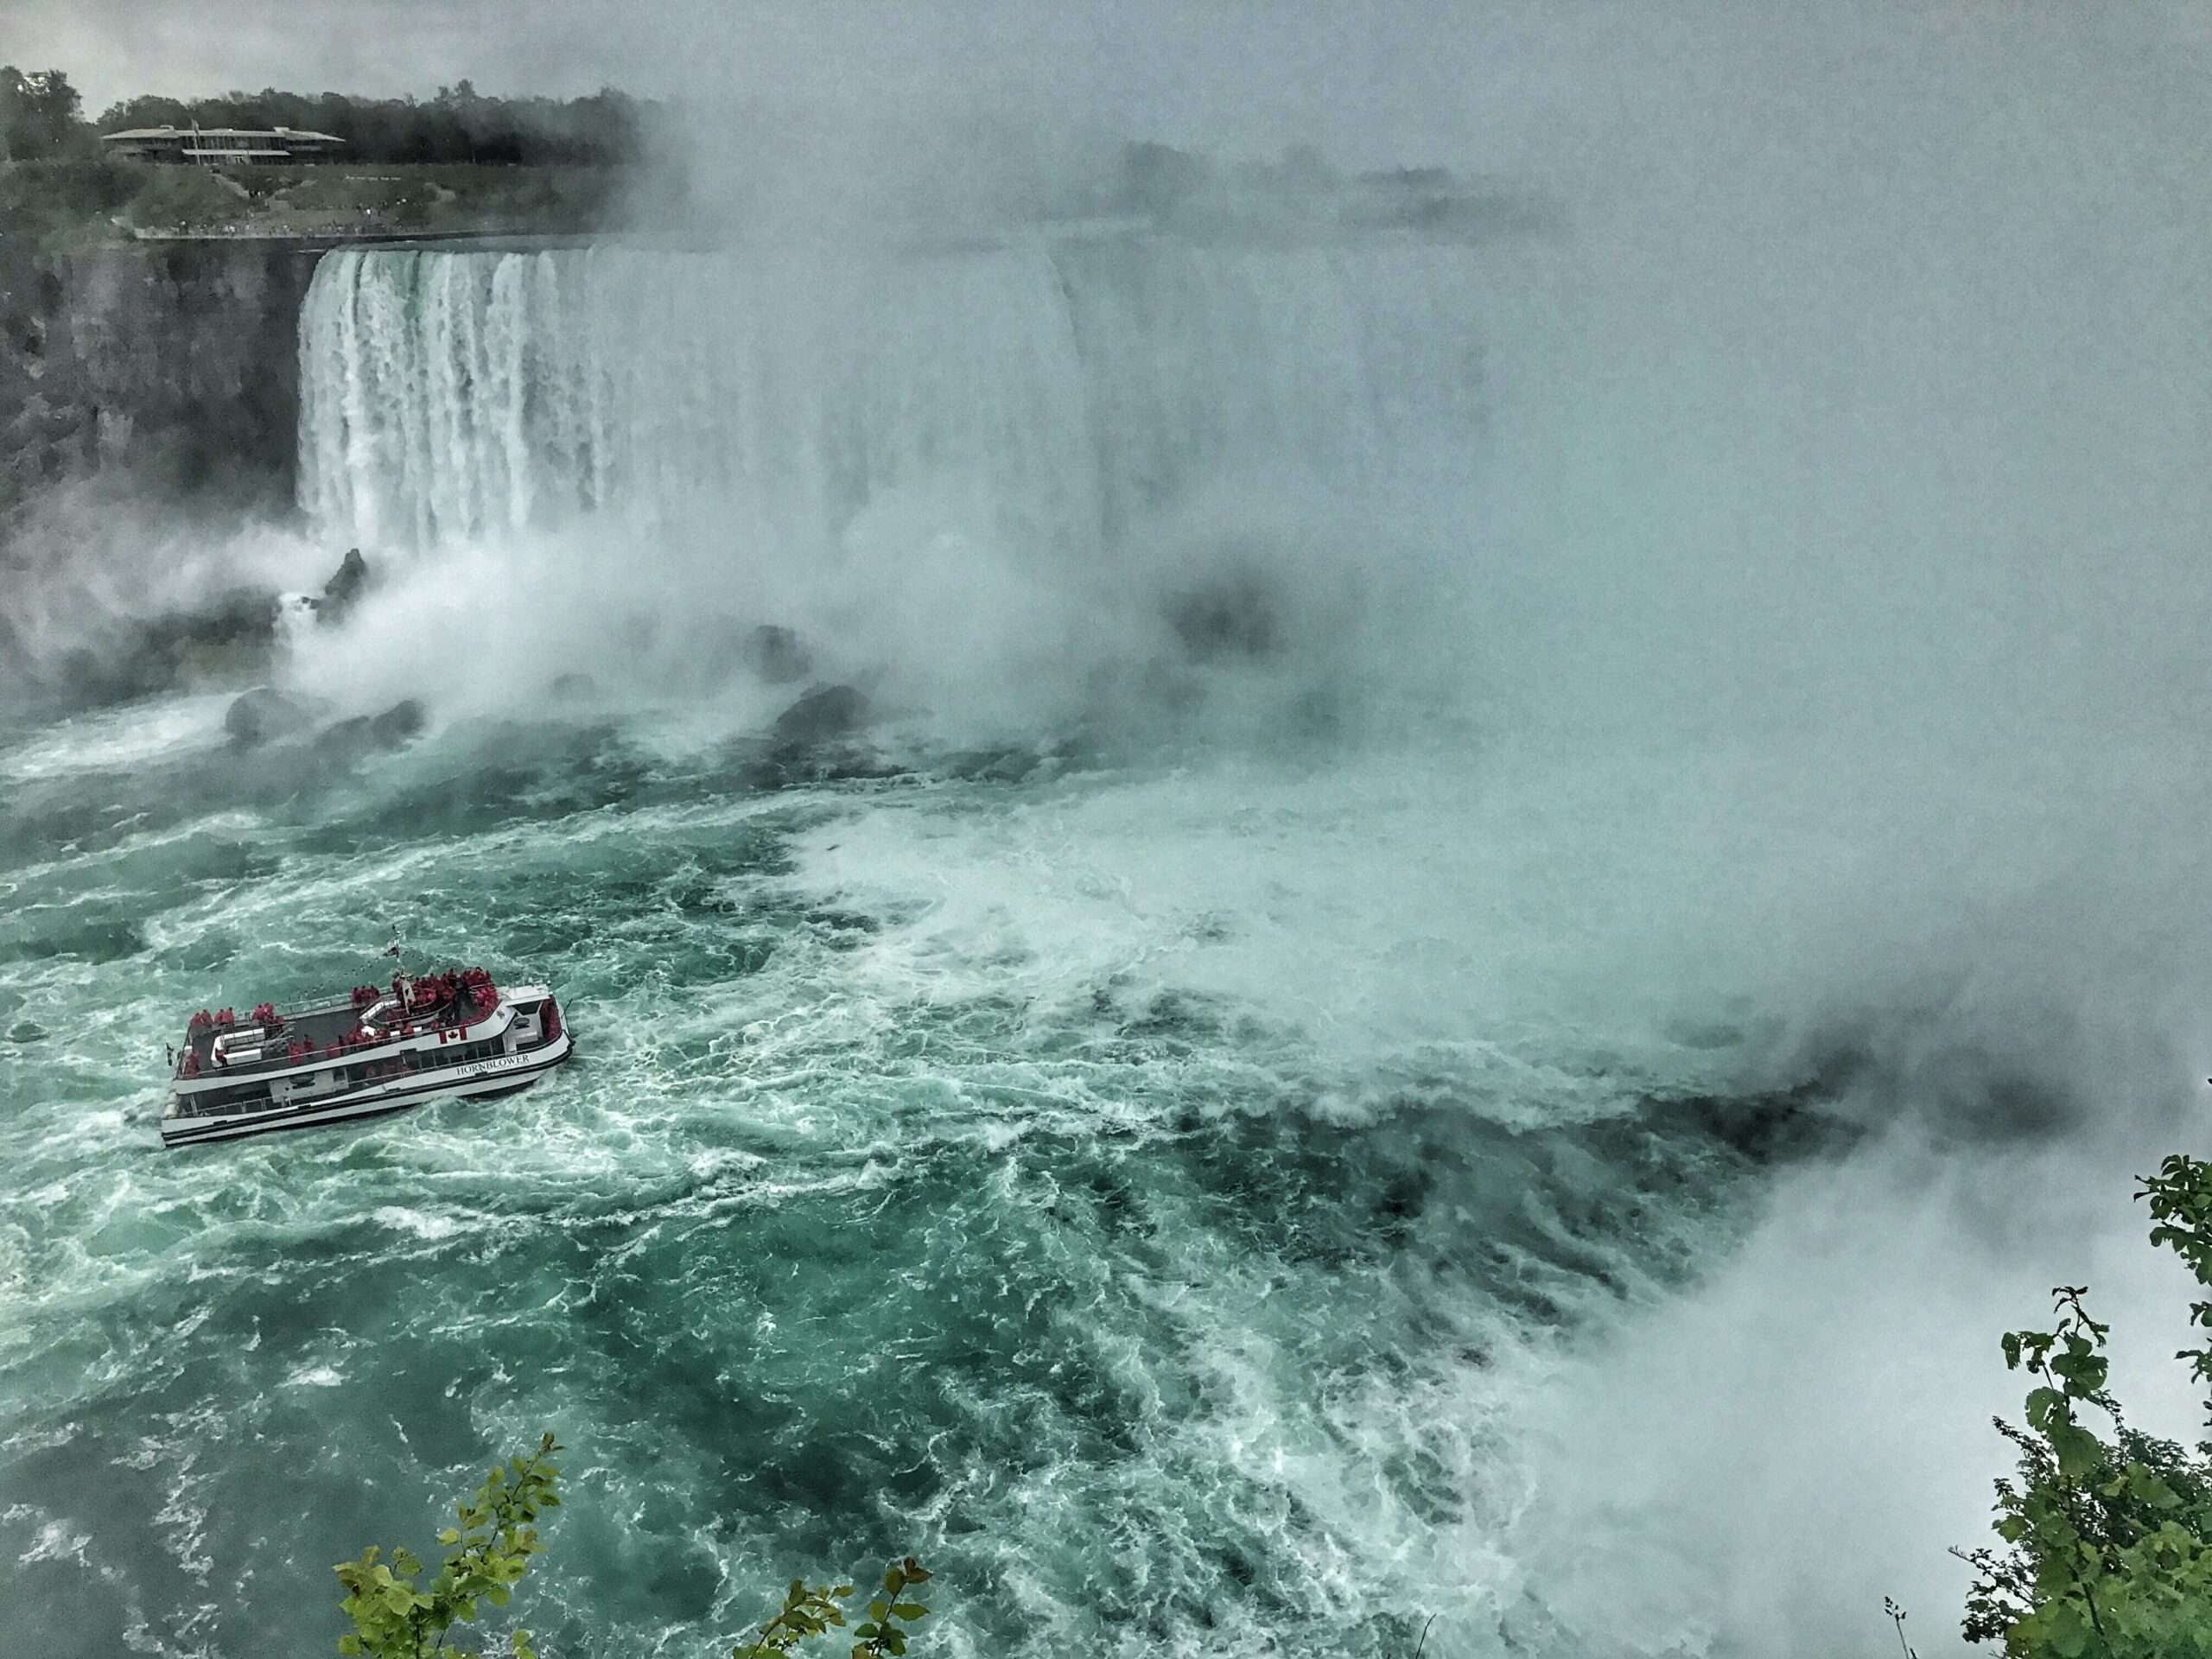 Niagara Falls with a boat on the water